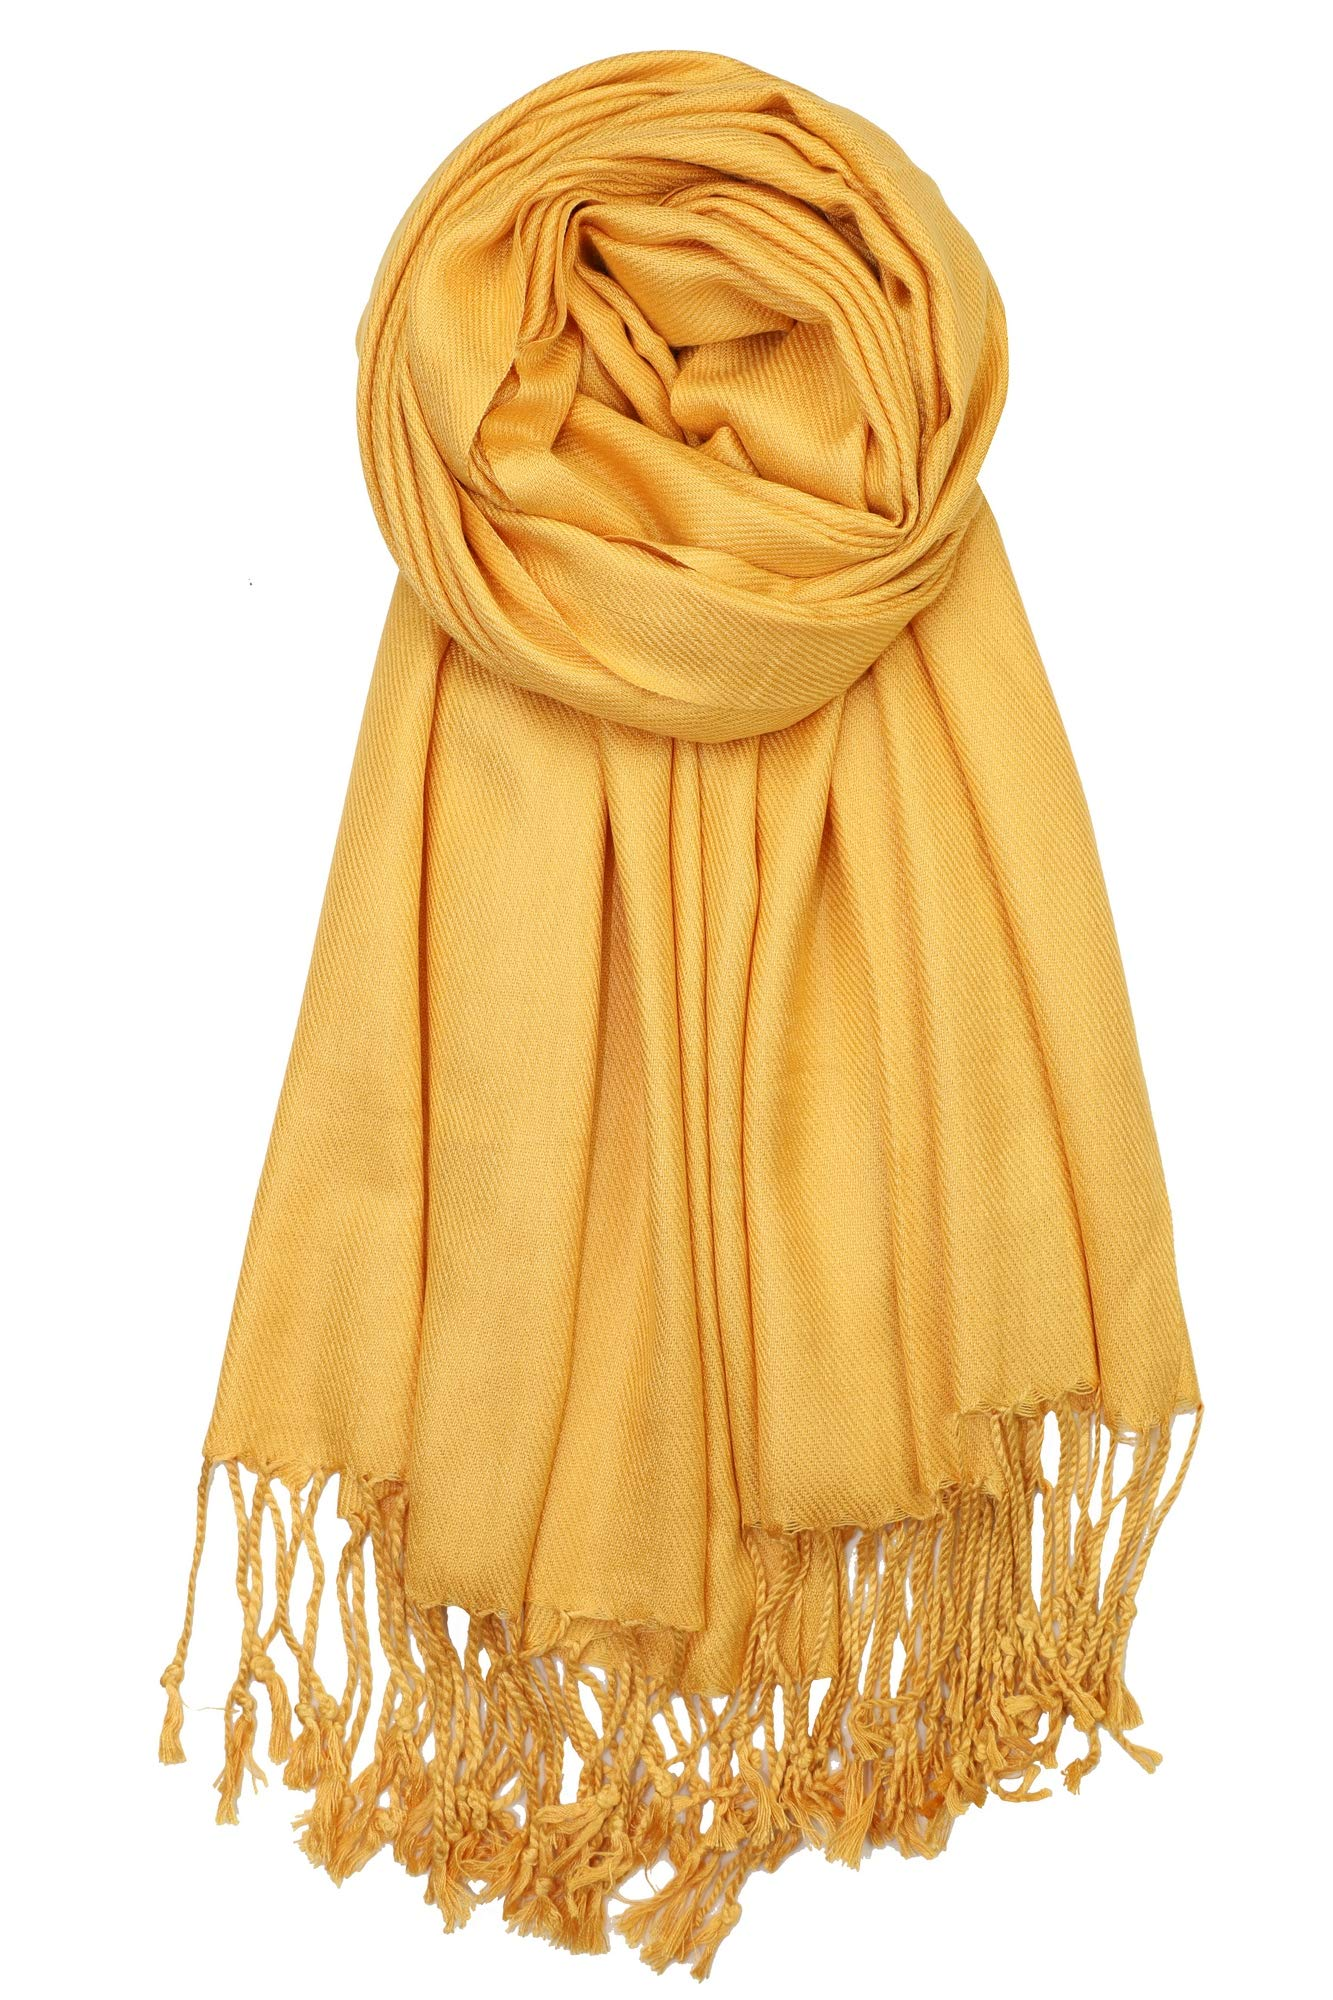 Achillea Soft Silky Solid Pashmina Shawl Wrap Scarf for Wedding Bridesmaid Evening Dress (Mustard Gold)